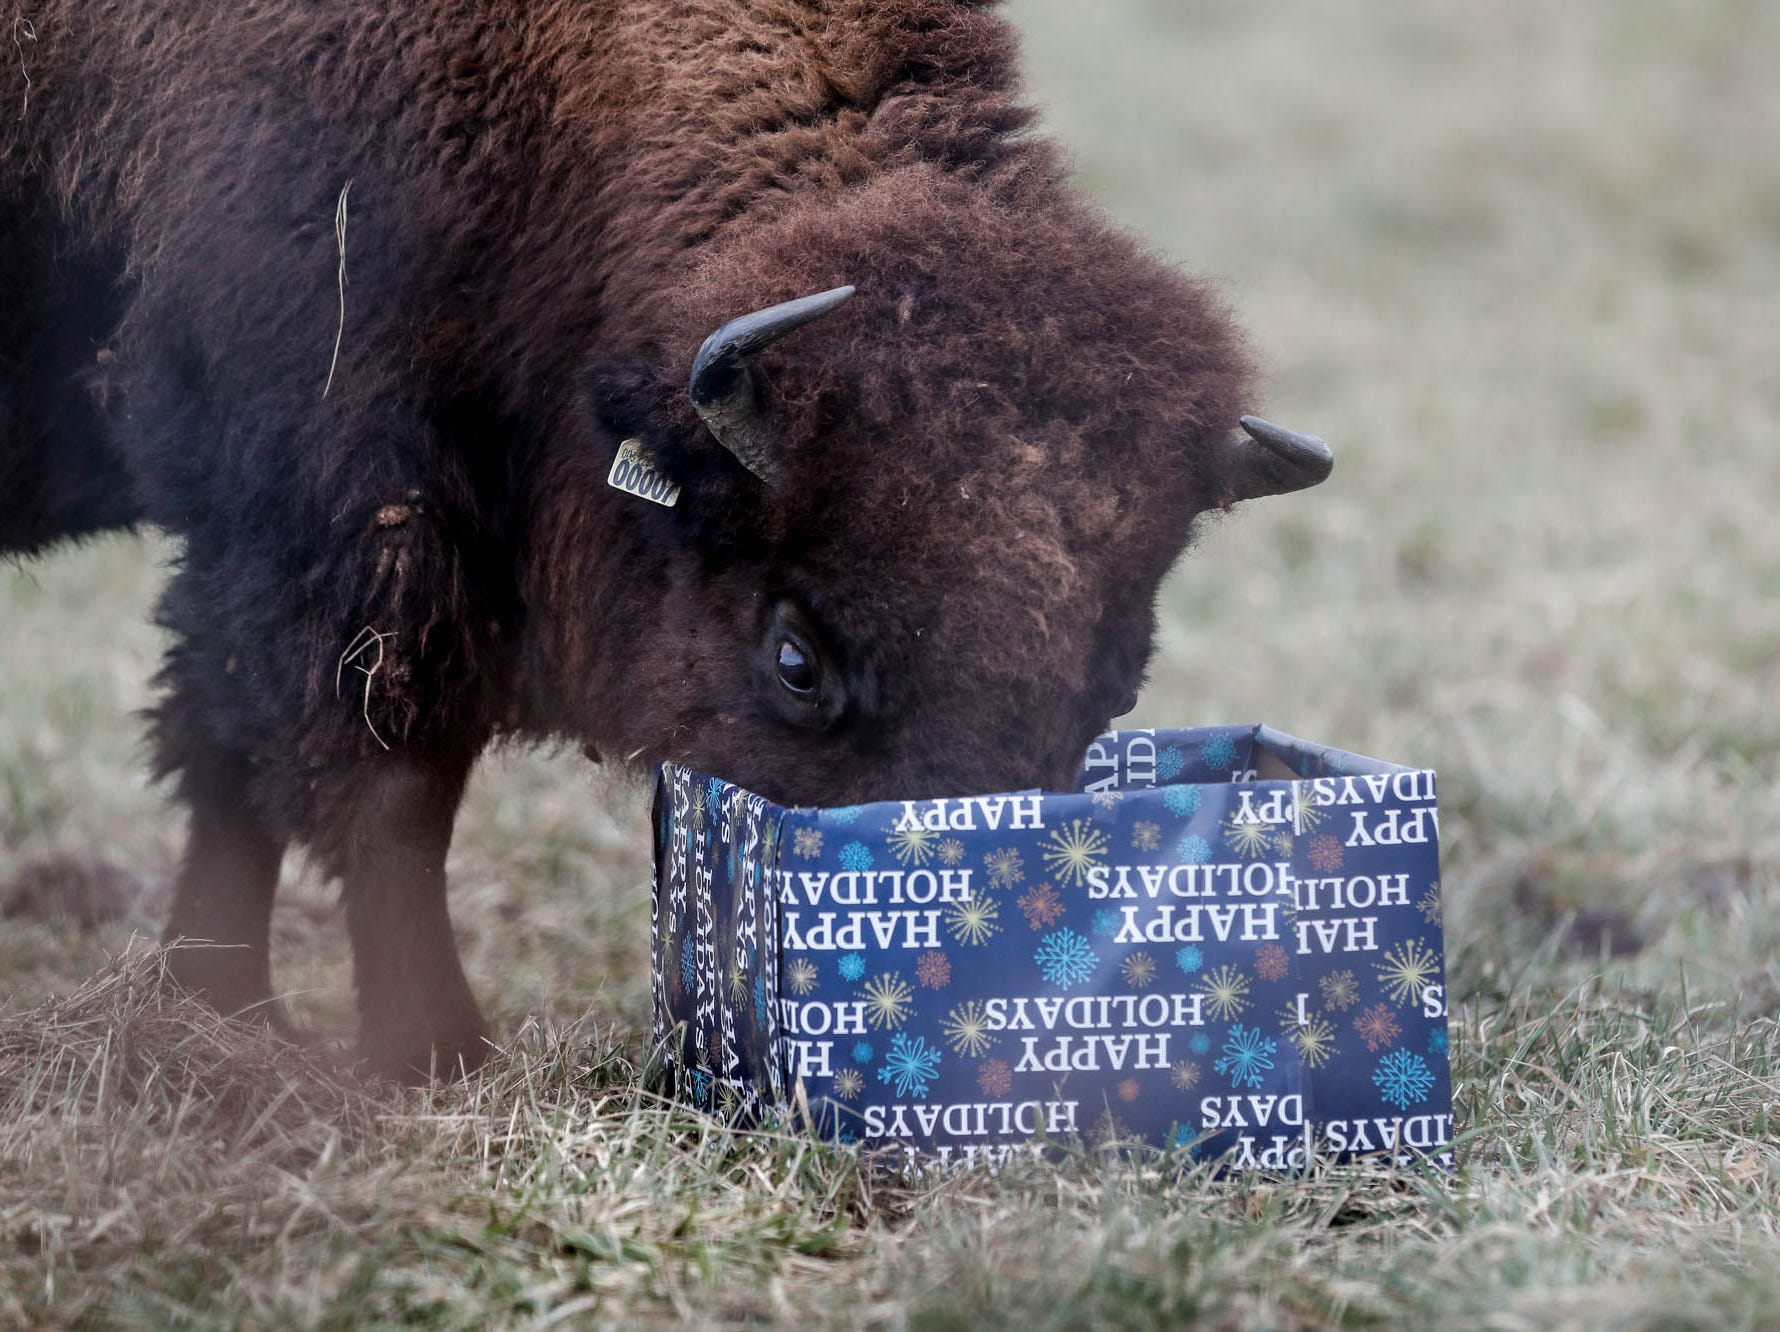 A bison opens a present filled with Christmas treats during Santa's visit to Wolf Park in Battle Ground Indiana on Saturday, Dec. 15, 2018.